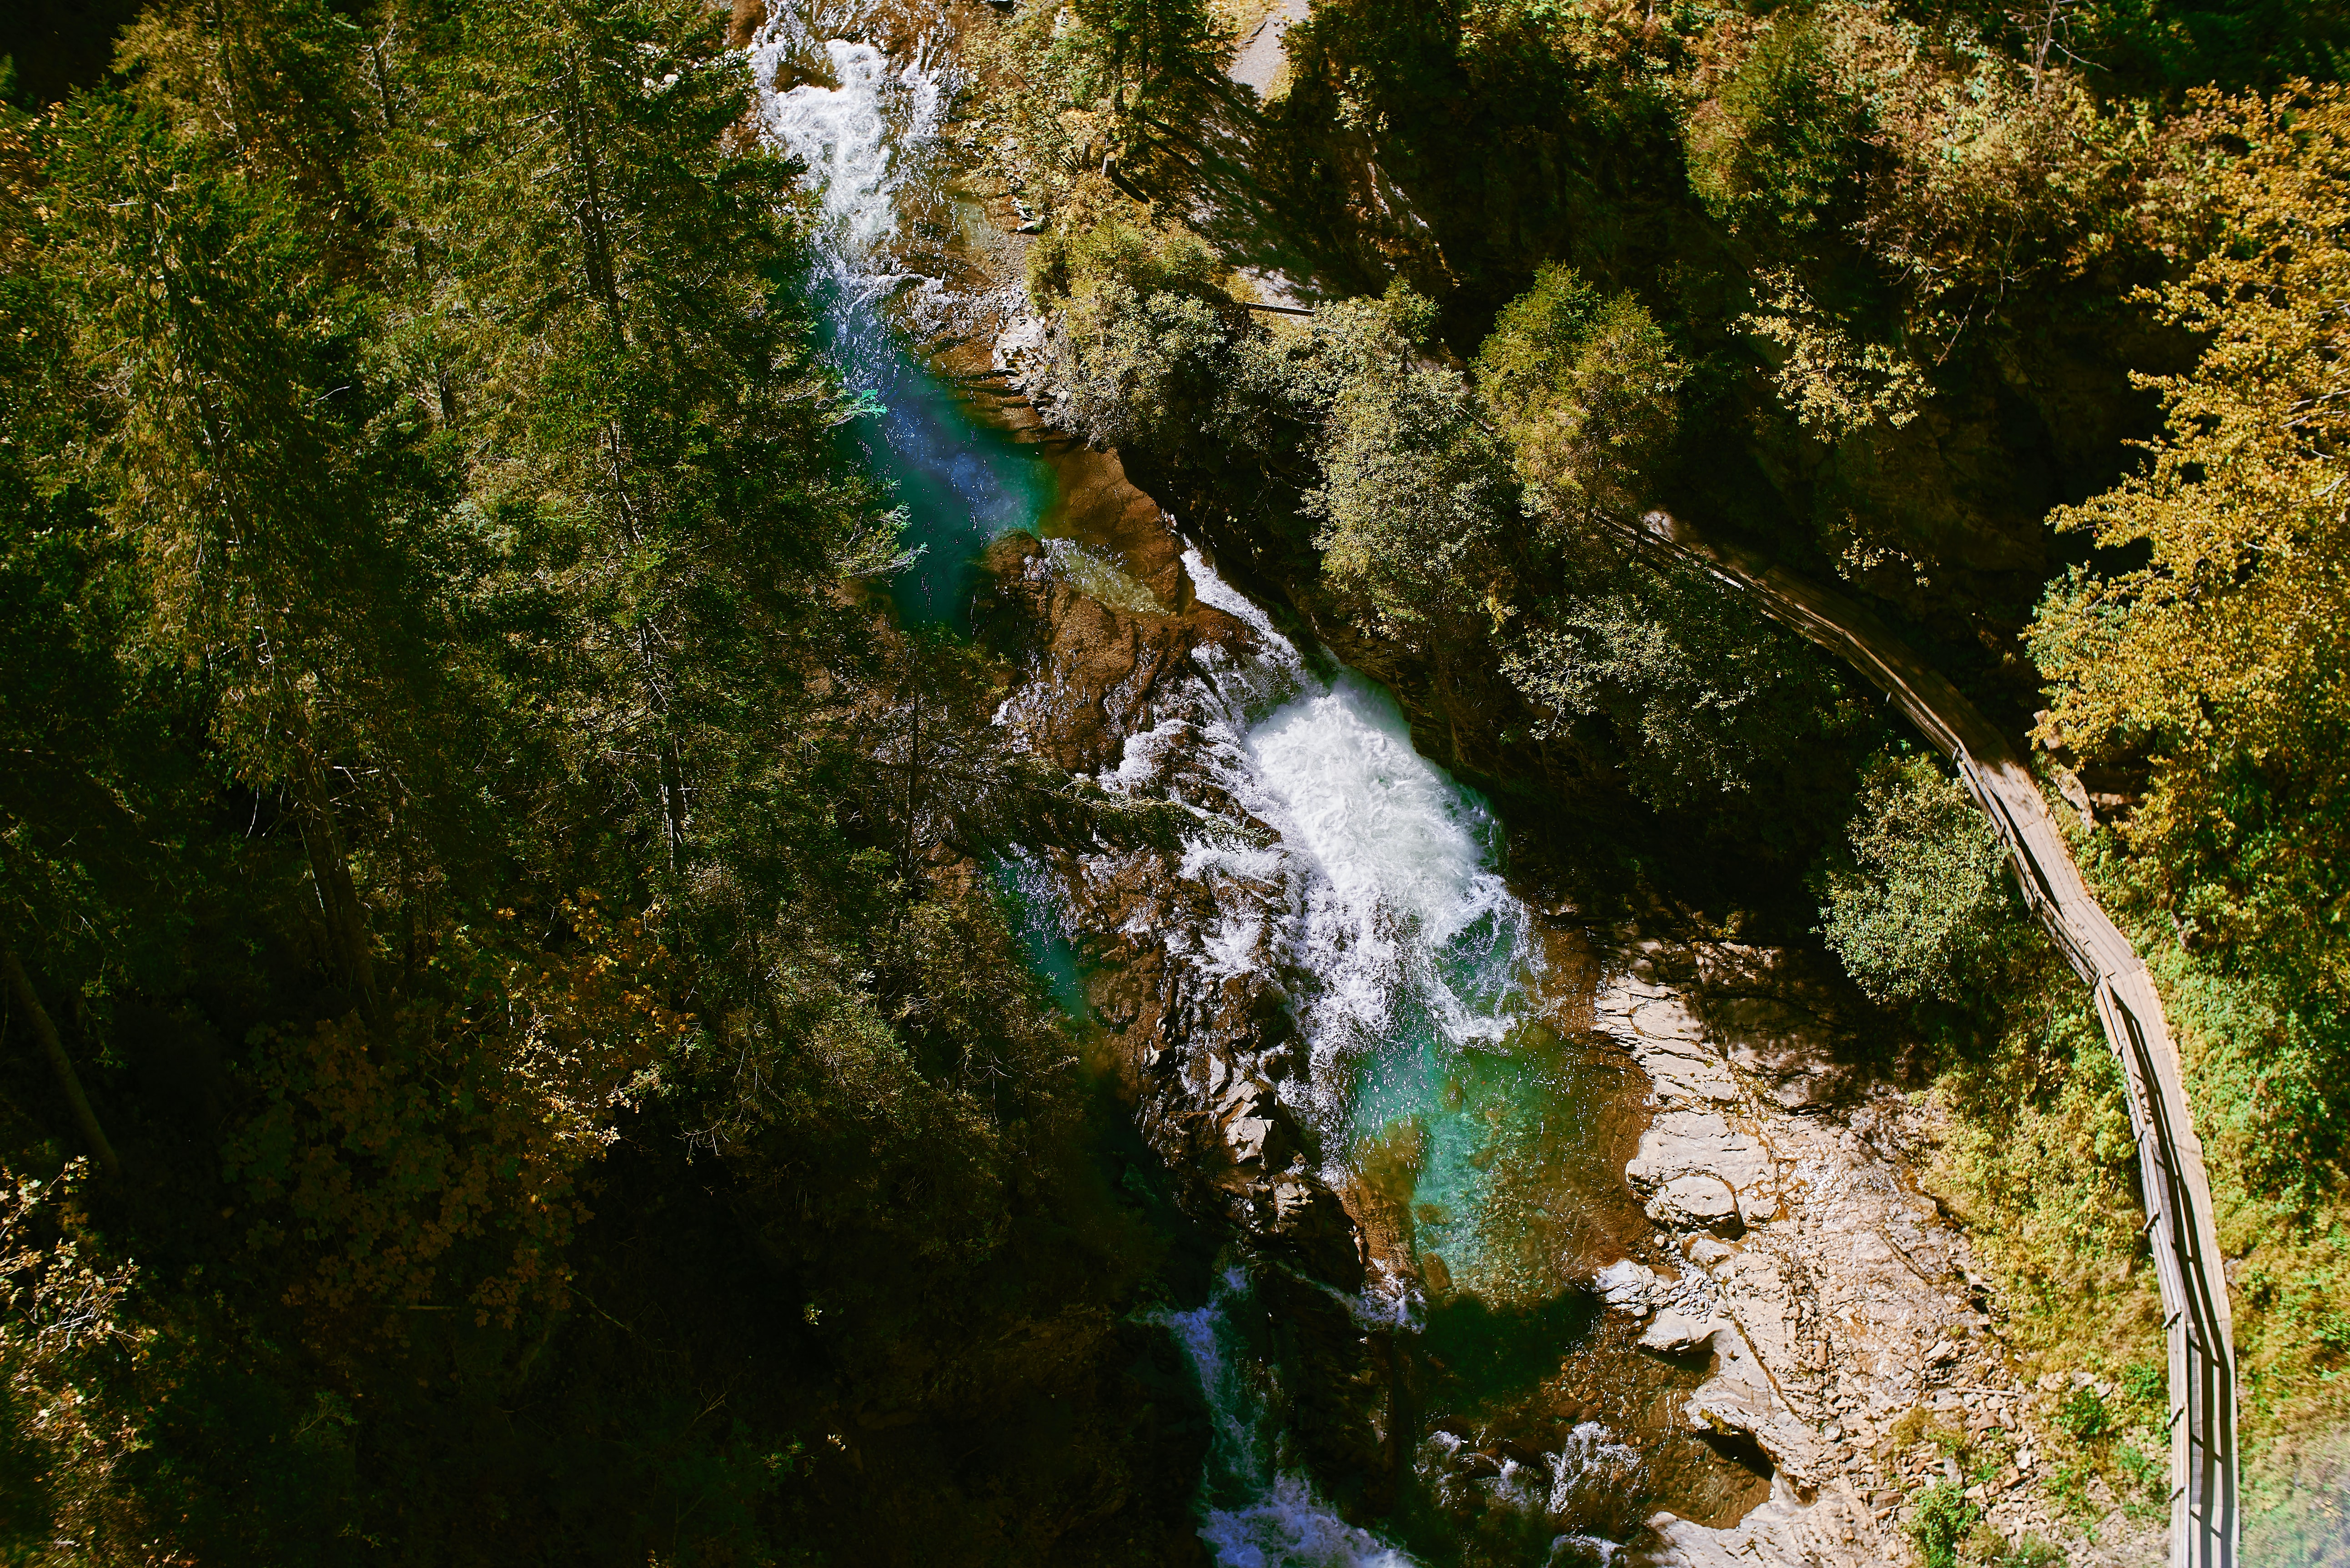 aerial photography of body of water surrounded with trees during daytime